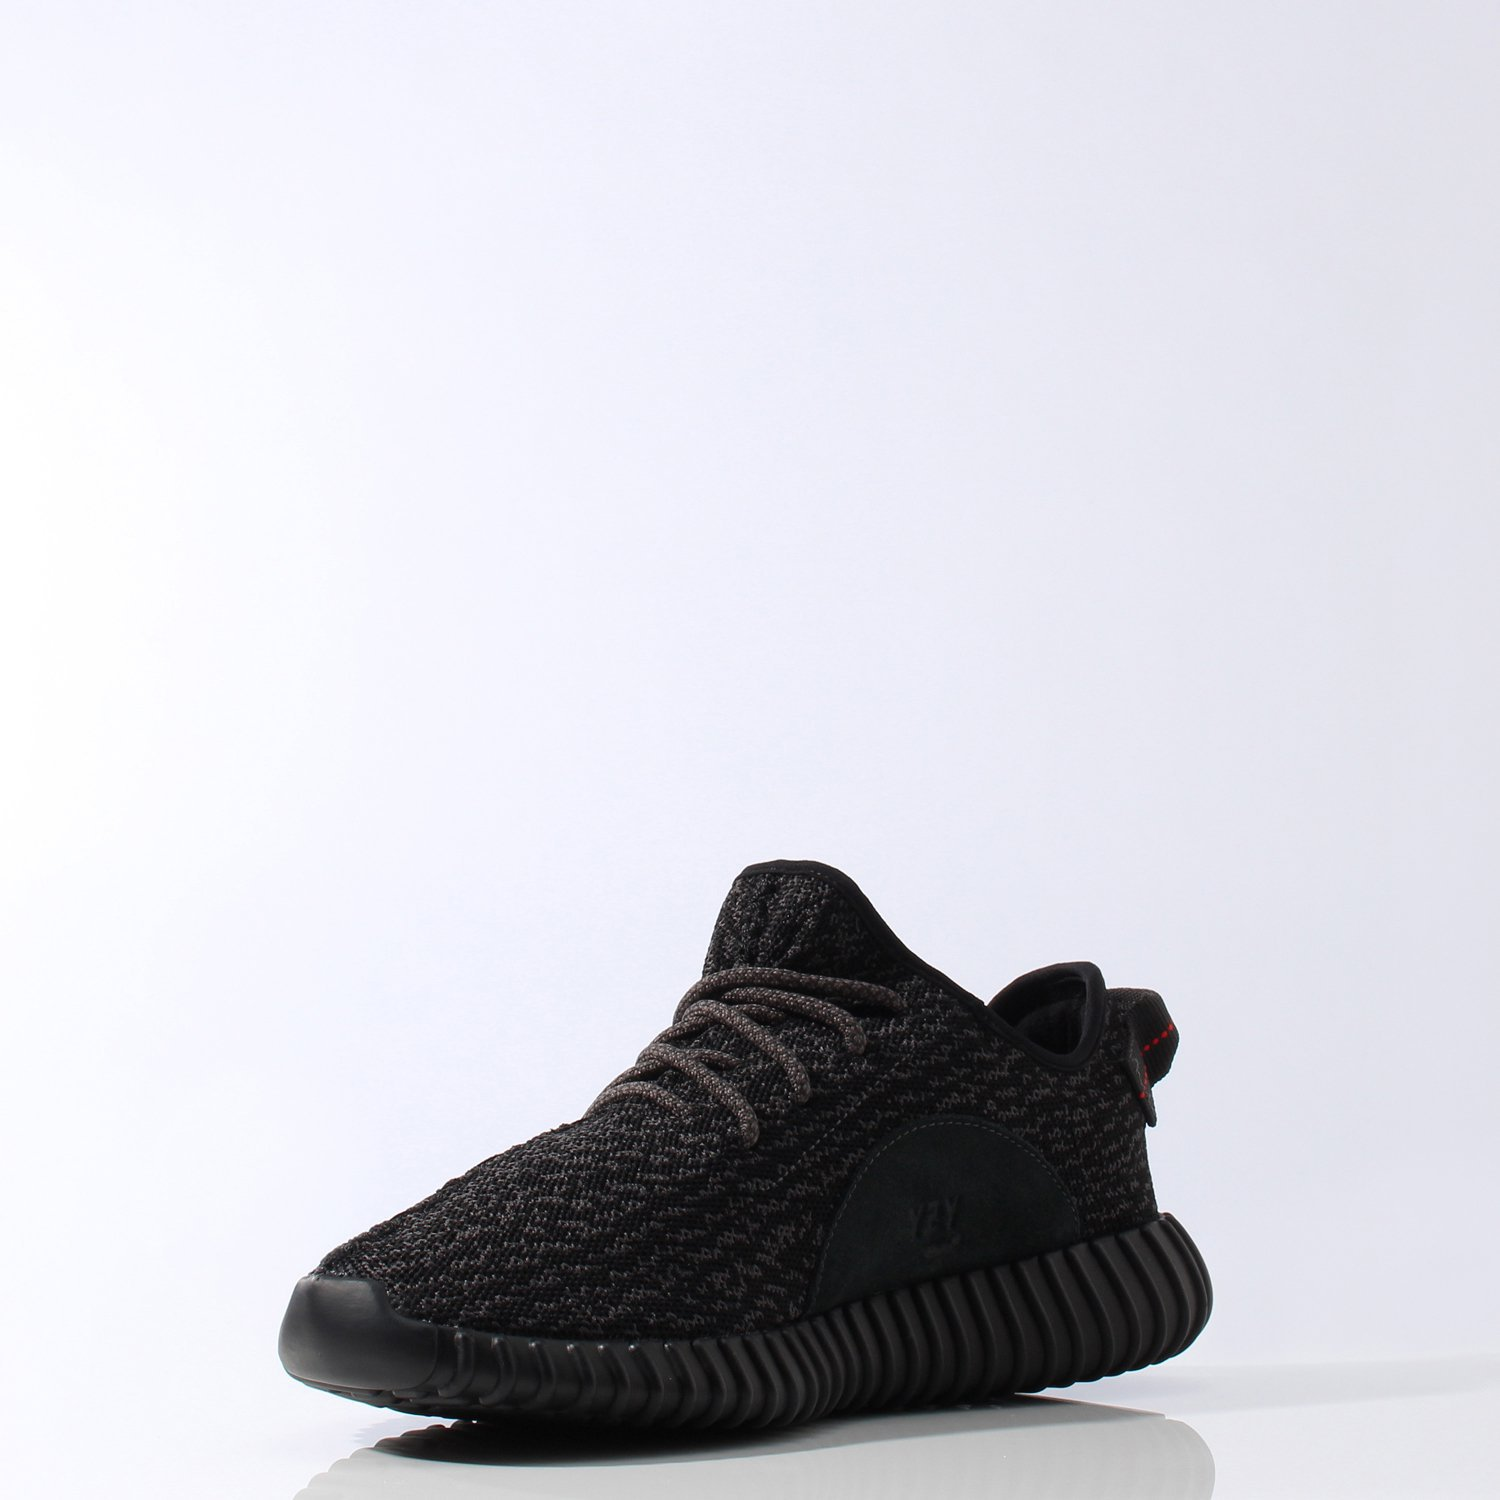 Yeezy Boost 350 Pirate Black (2016) [3]